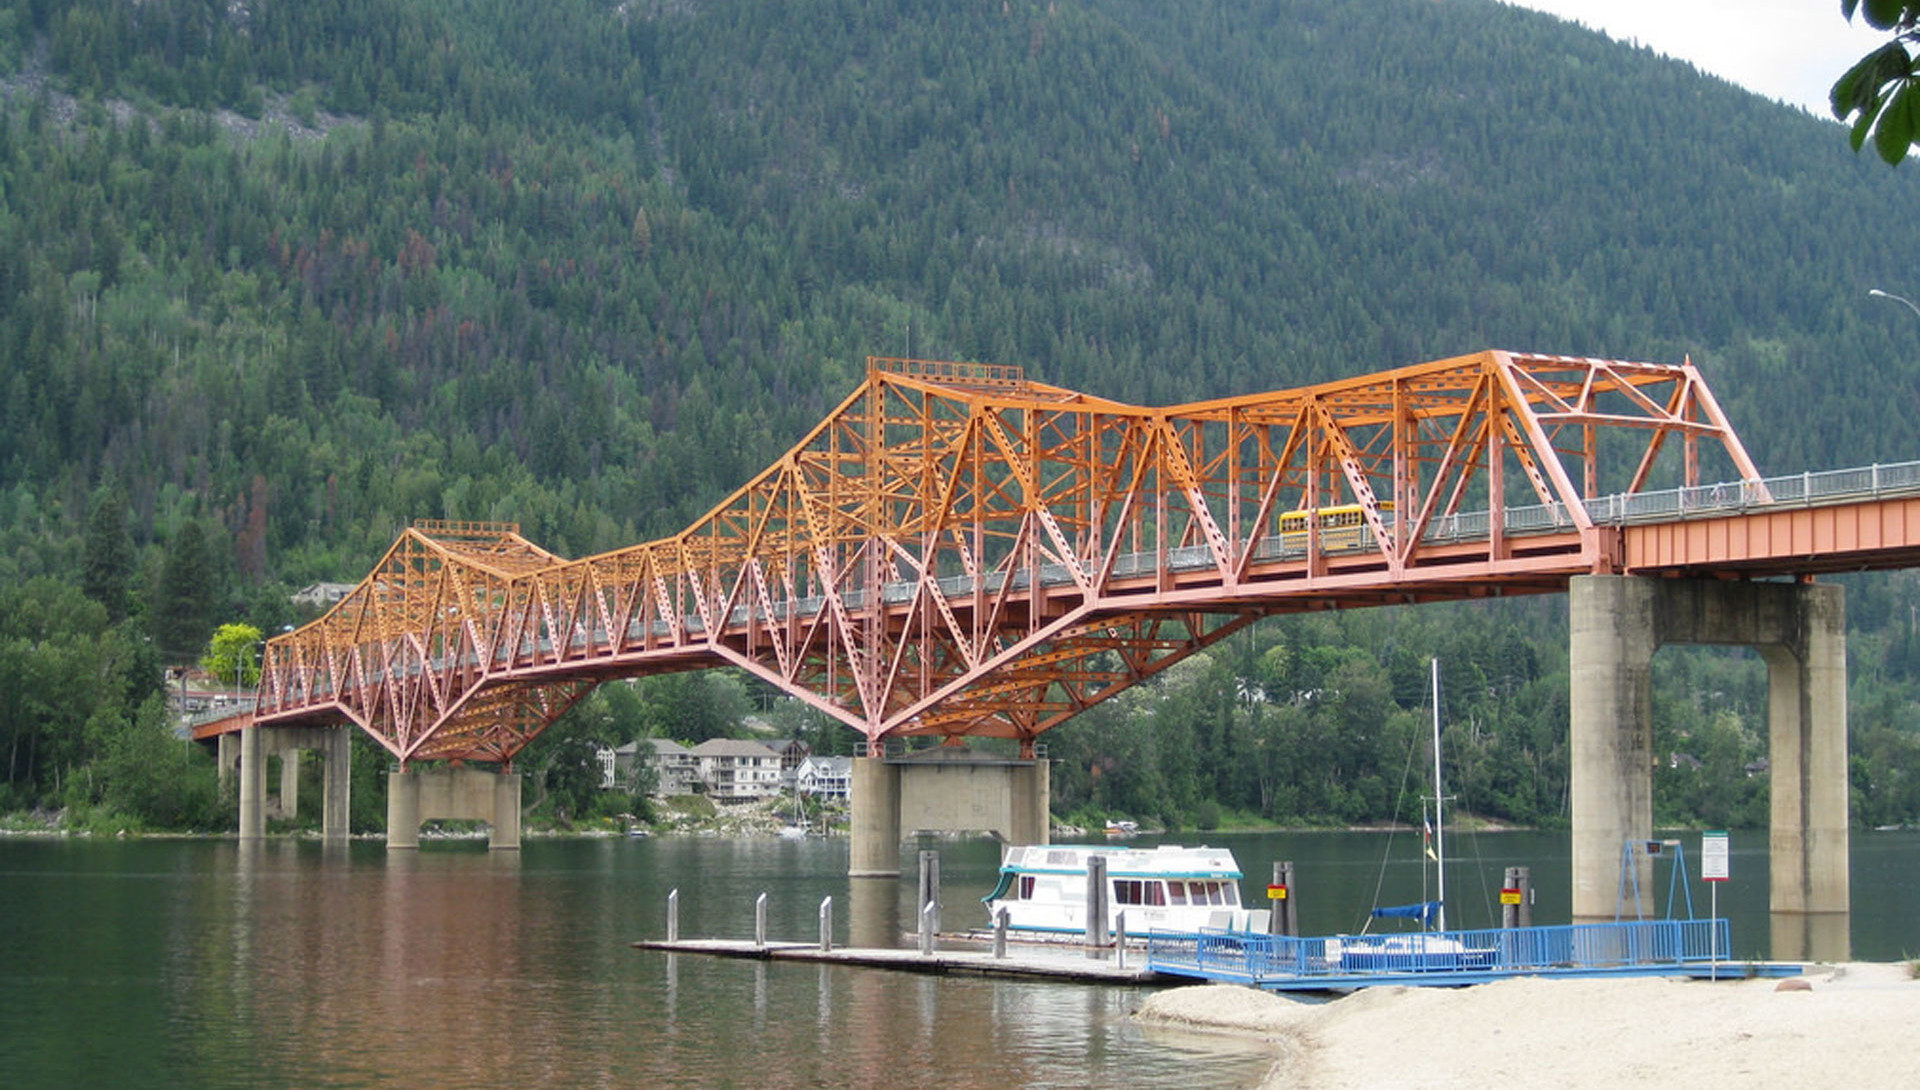 BIG ORANGE BRIDGE